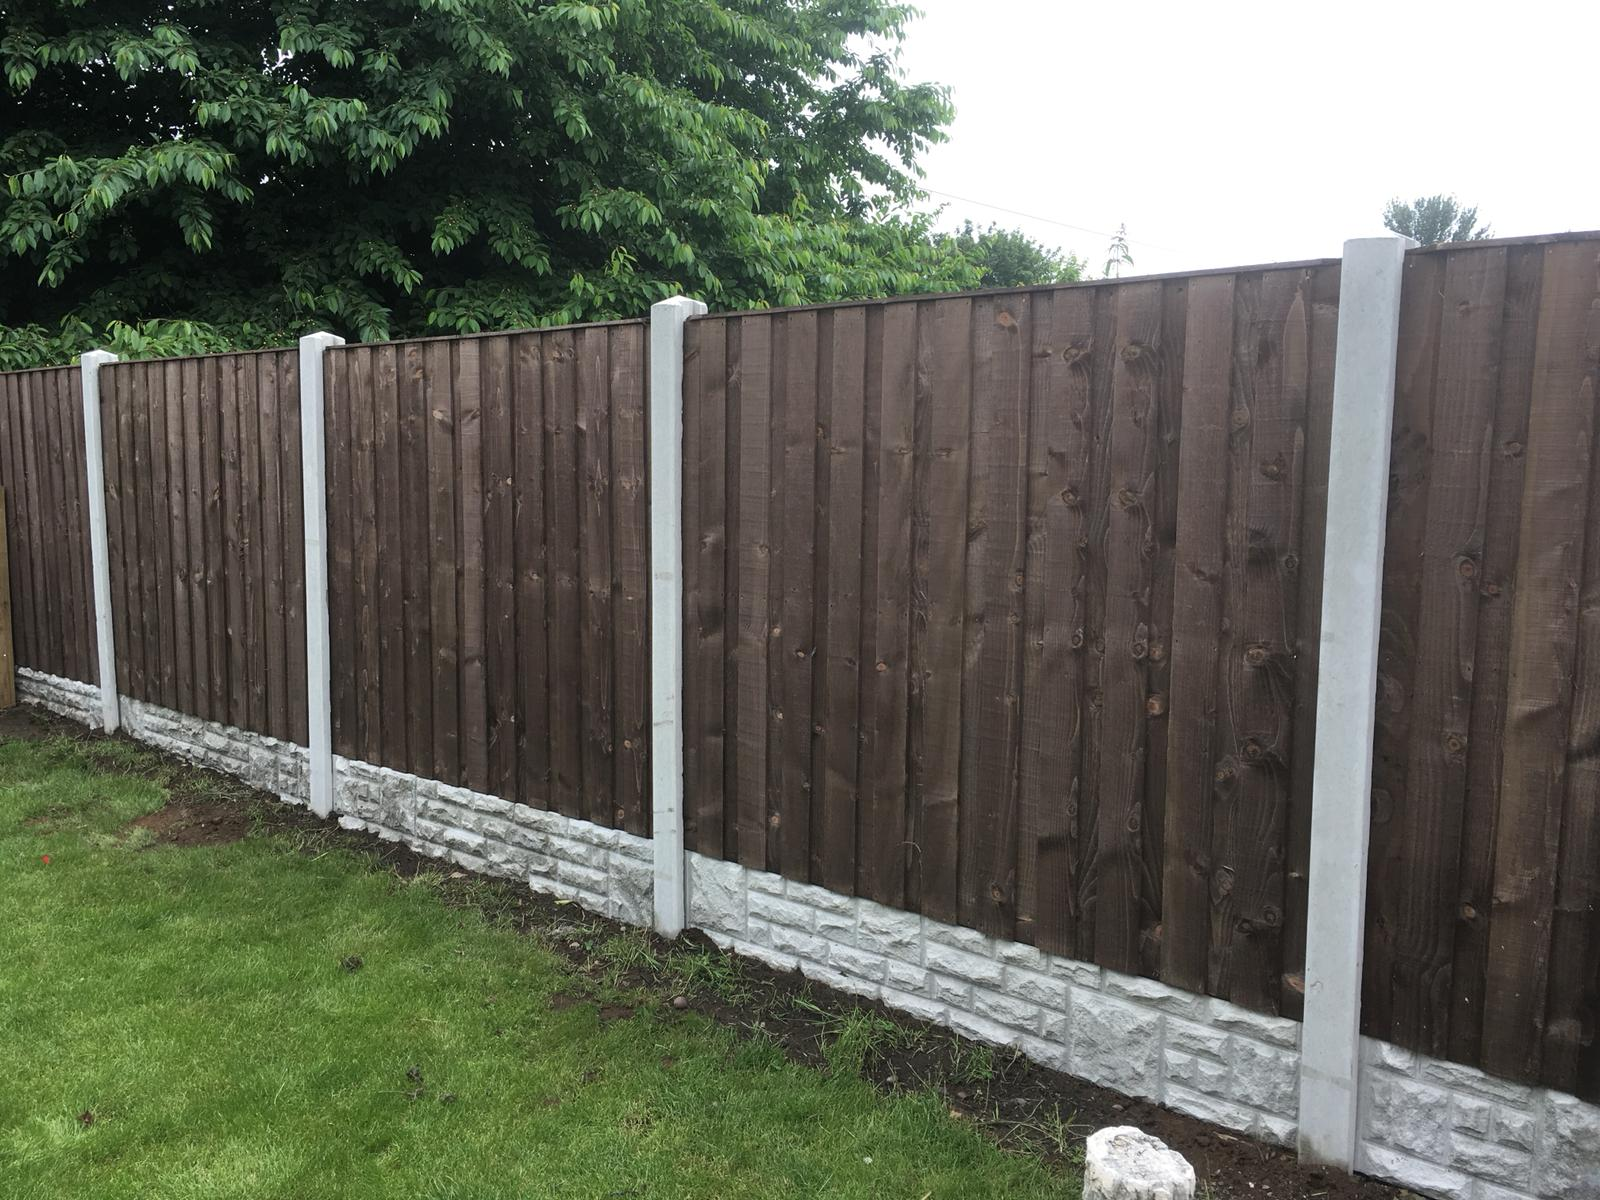 Fencing along a garden edge